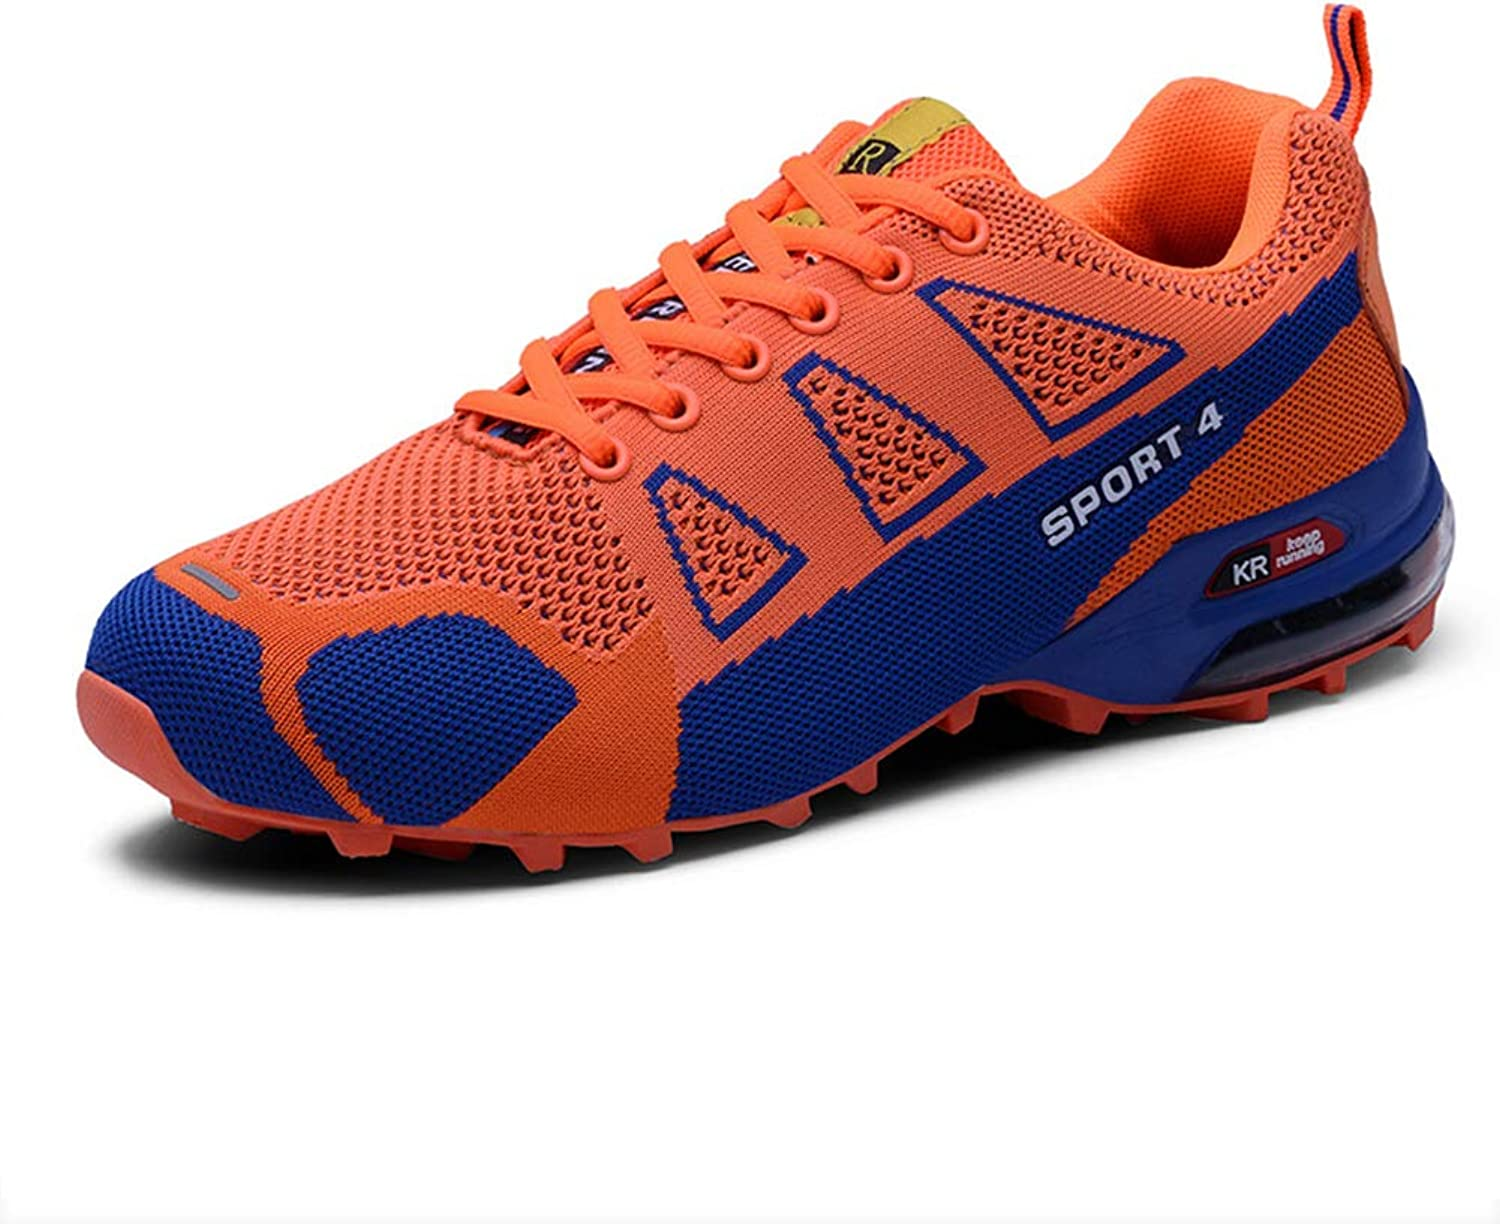 SELCNG Hiking shoes Non-Slip Ultra Light Outdoor Walking shoes Breathable Sports Climbing shoes-orange-43